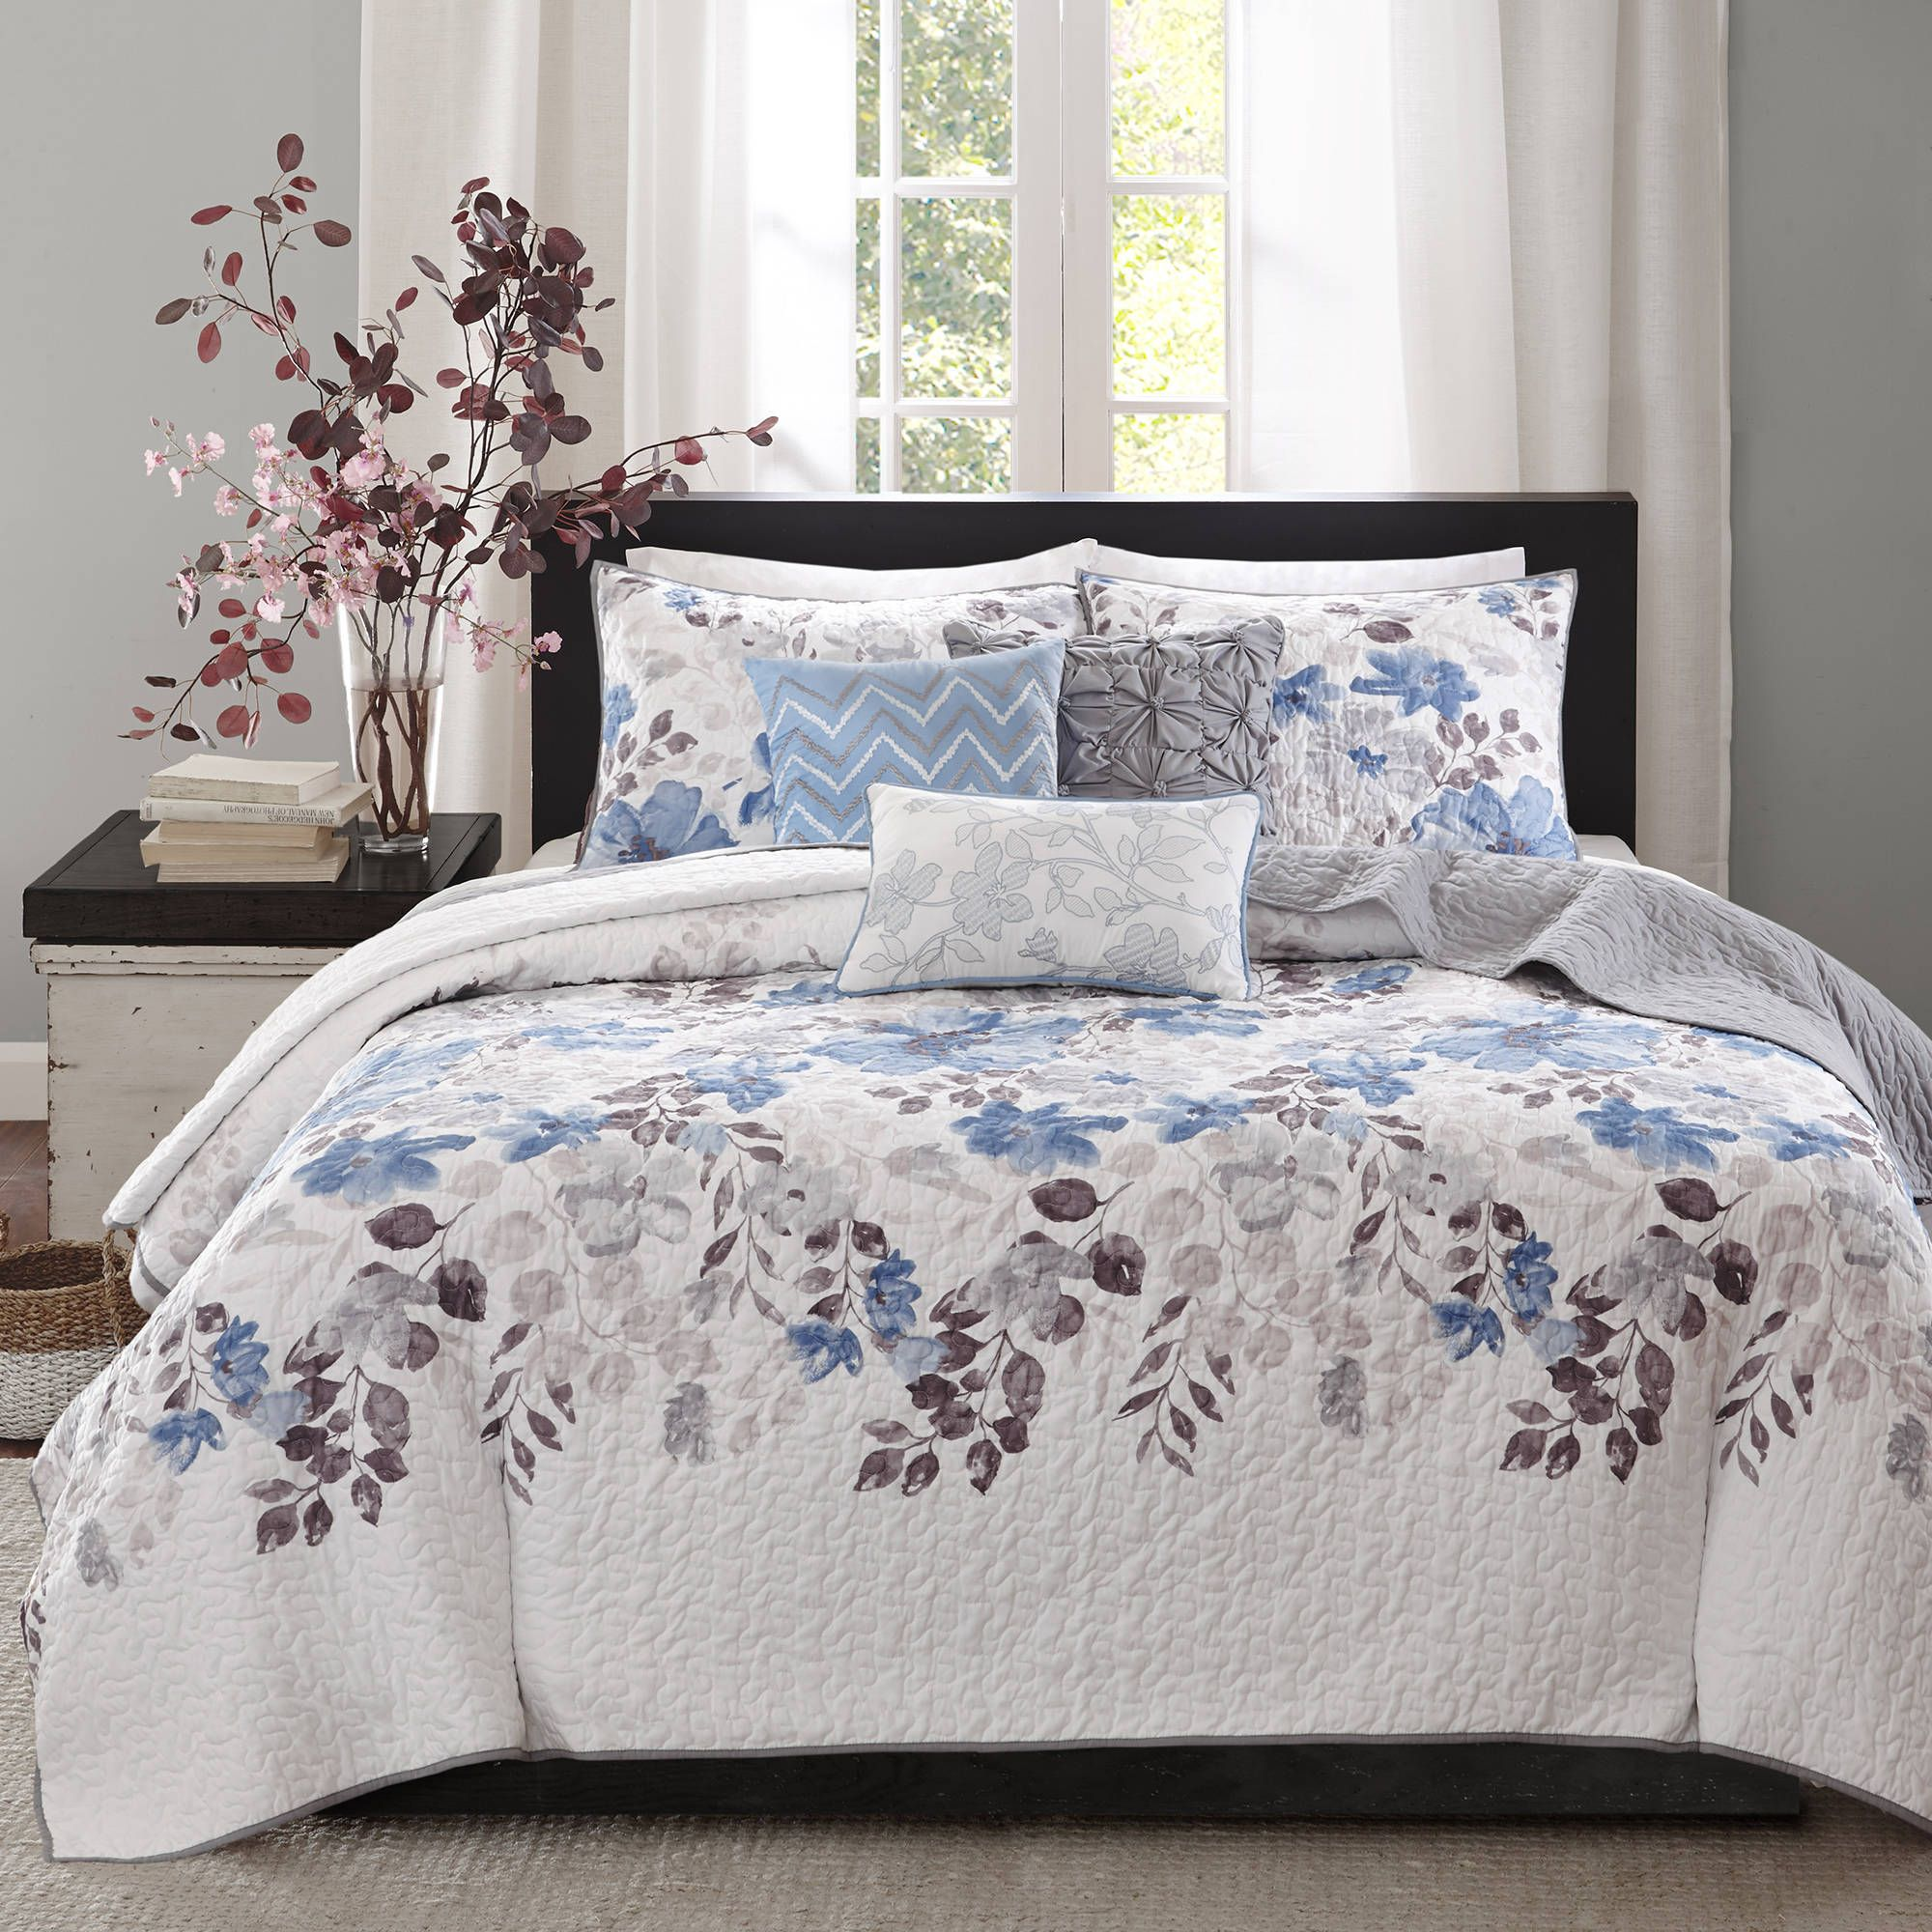 Home Essence Willow 6 Piece Reversible Printed Coverlet Bedding